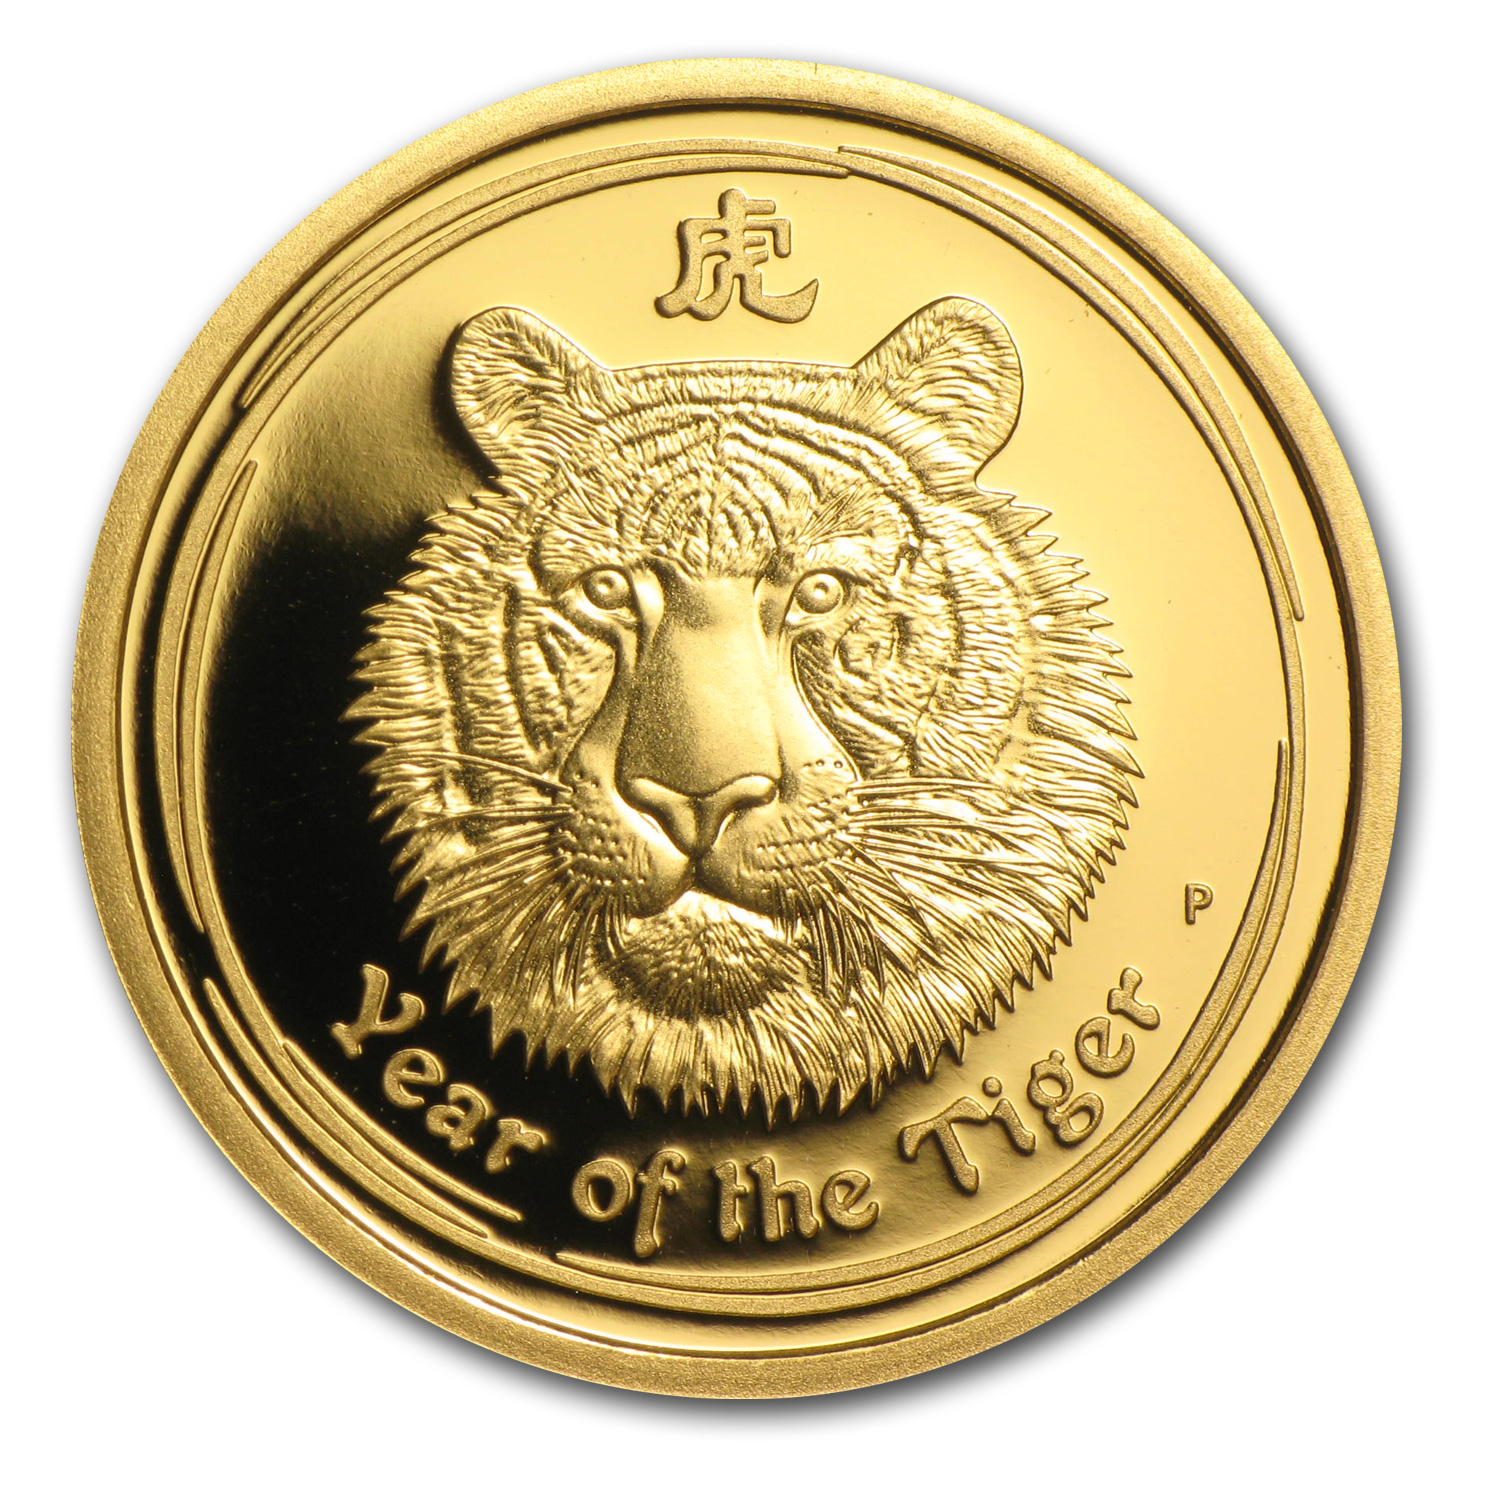 2010 1/4 oz Gold Lunar Year of the Tiger Proof (Series II)